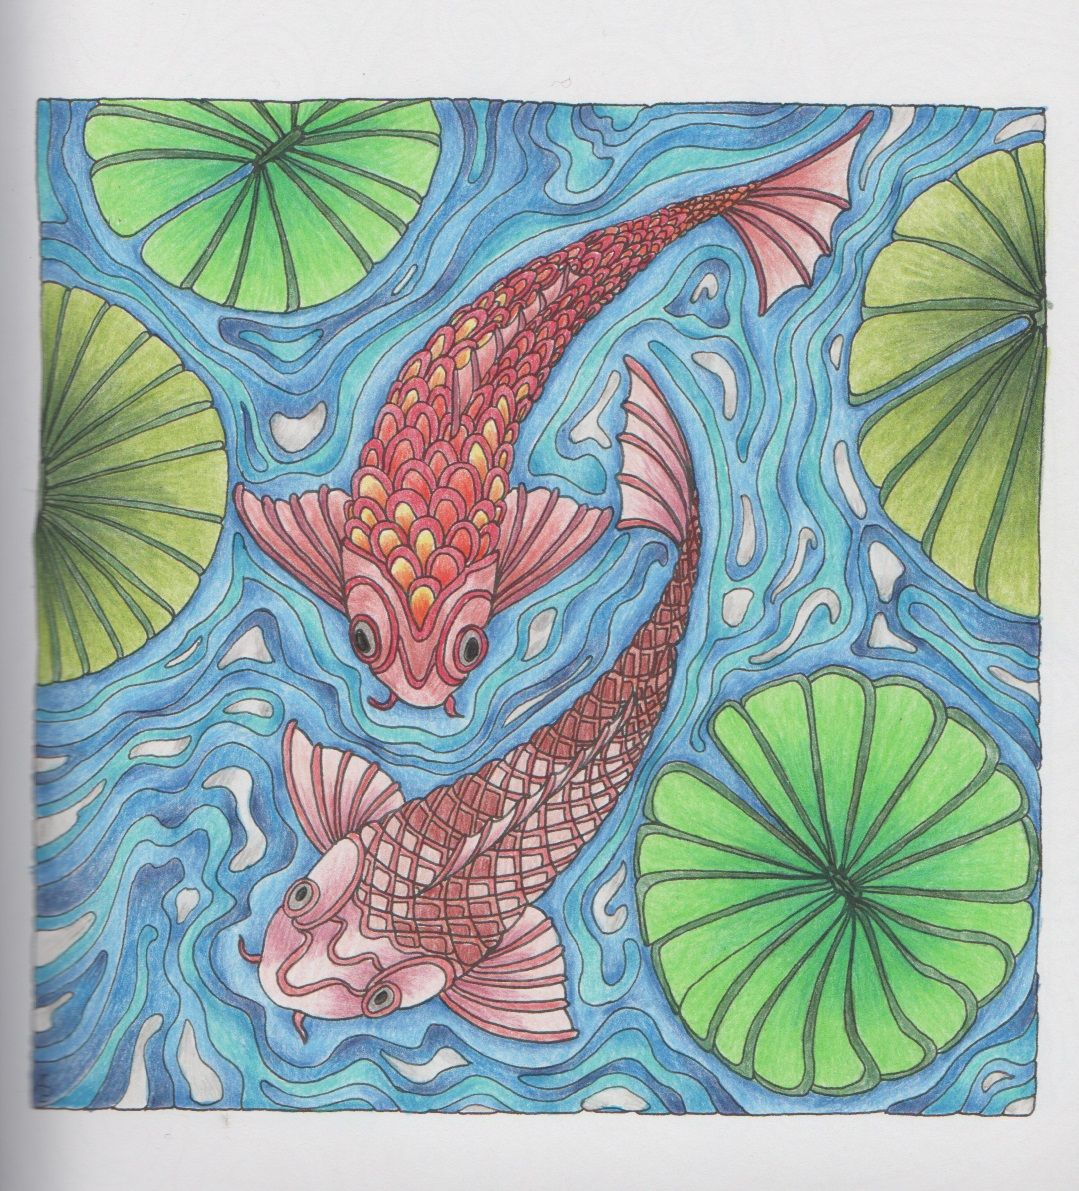 Zen ocean colouring book - Water Scenes 001 From Color Me Calm By Lacy Mucklow And Angela Porter